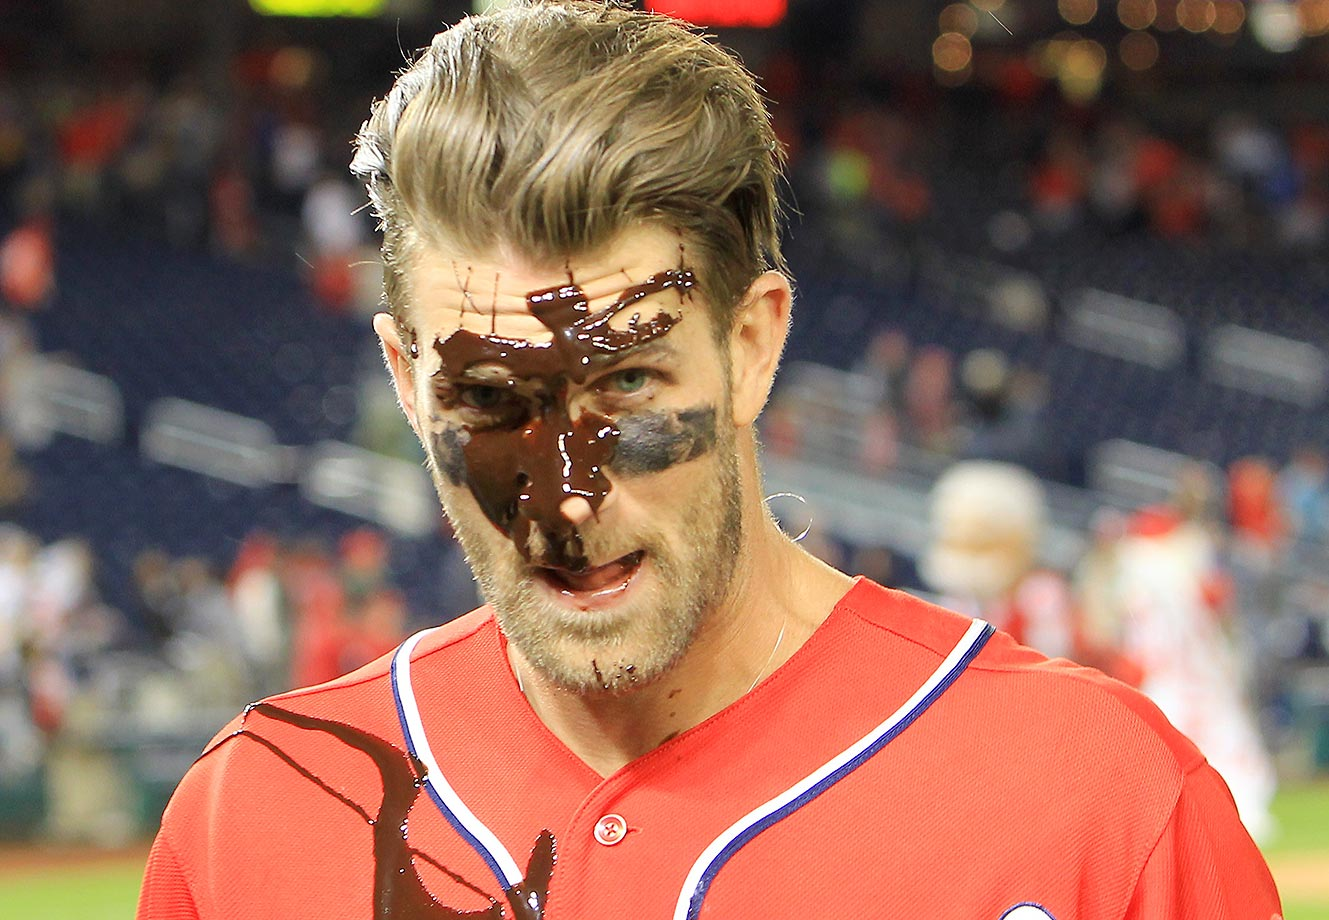 Bryce Harper of the Washington Nationals gets the chocolate syrup treatment after his walk-off double win over the Phillies.